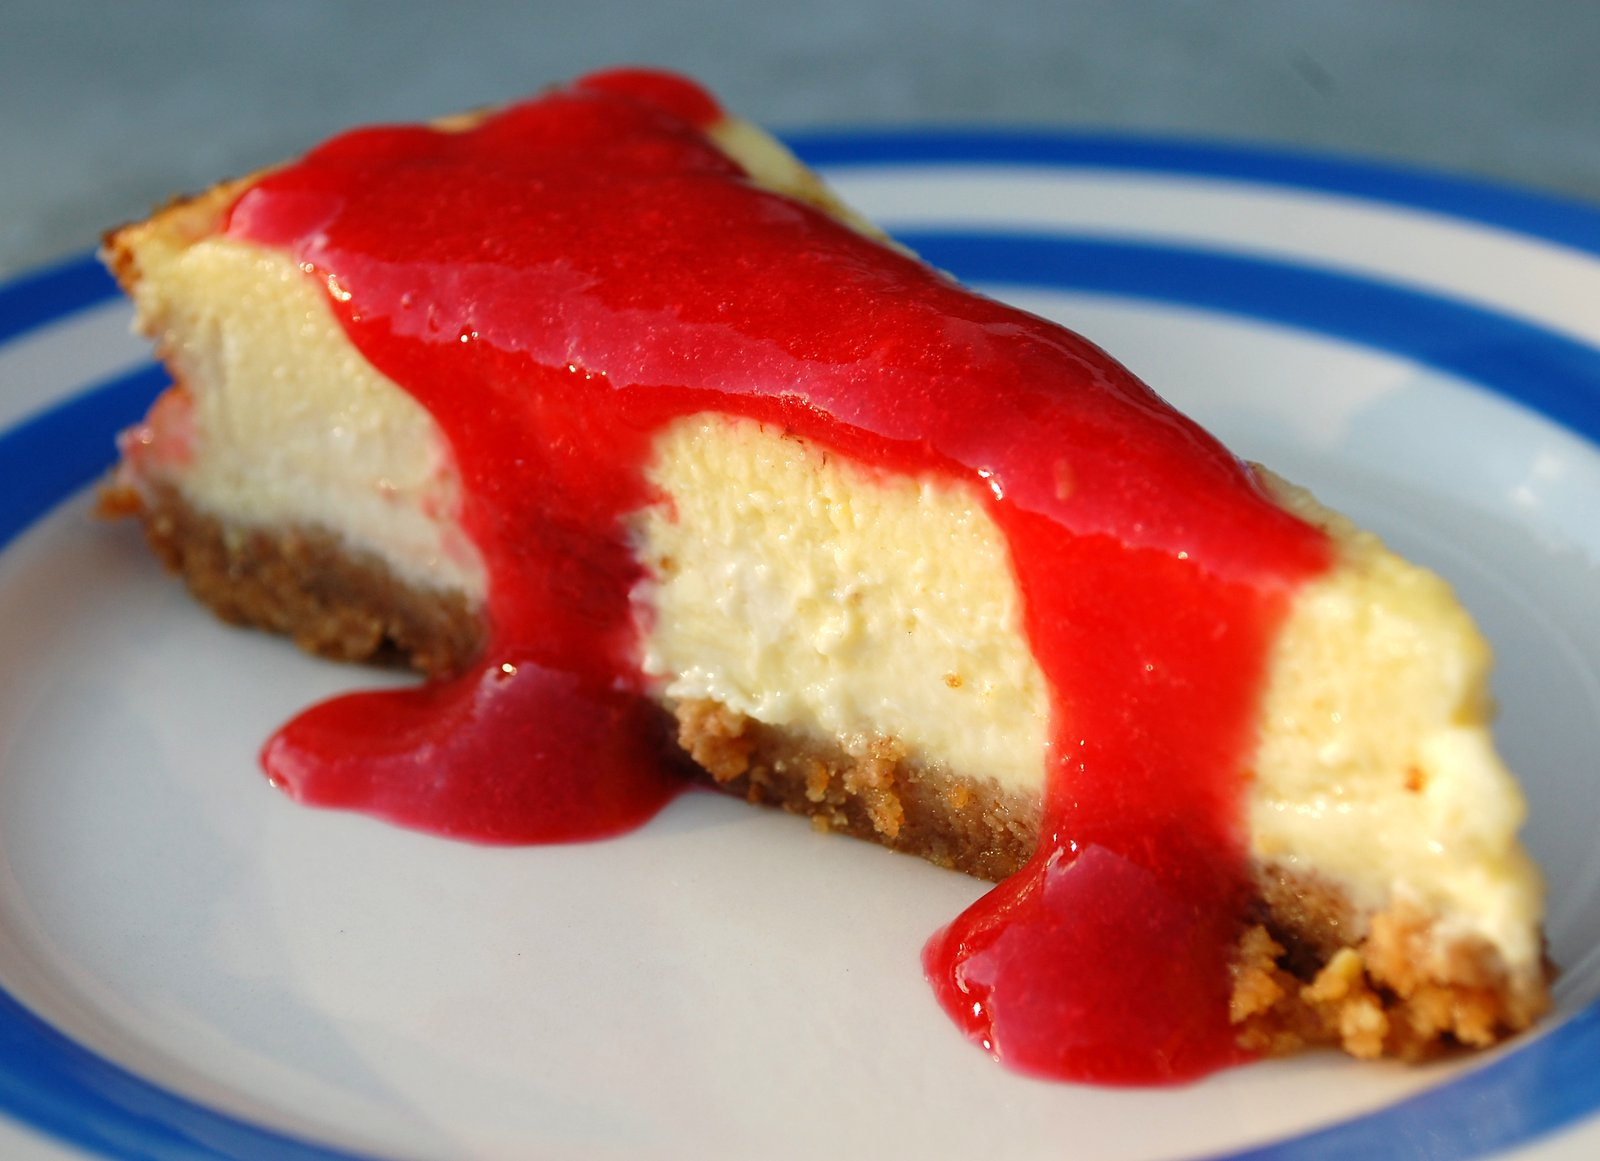 Raspberry Cheesecake With Raspberry Coulis